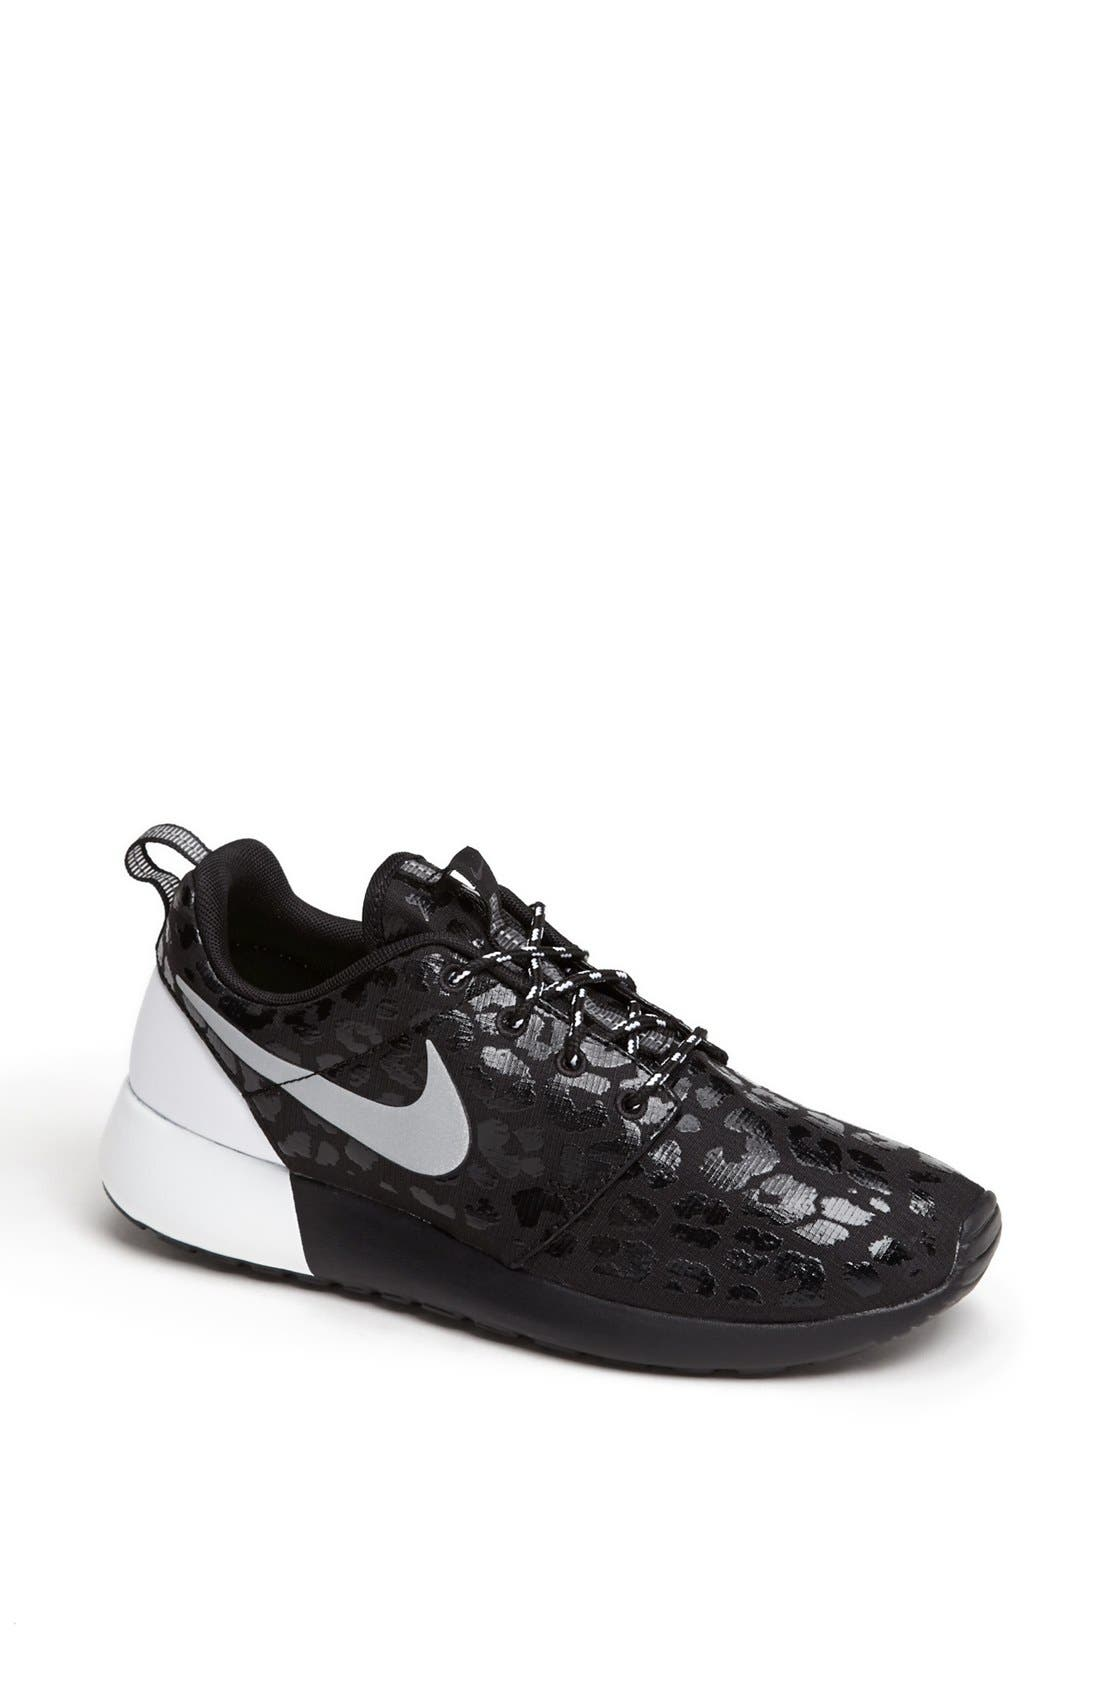 Alternate Image 1 Selected - Nike 'Roshe Run' Sneaker (Women)